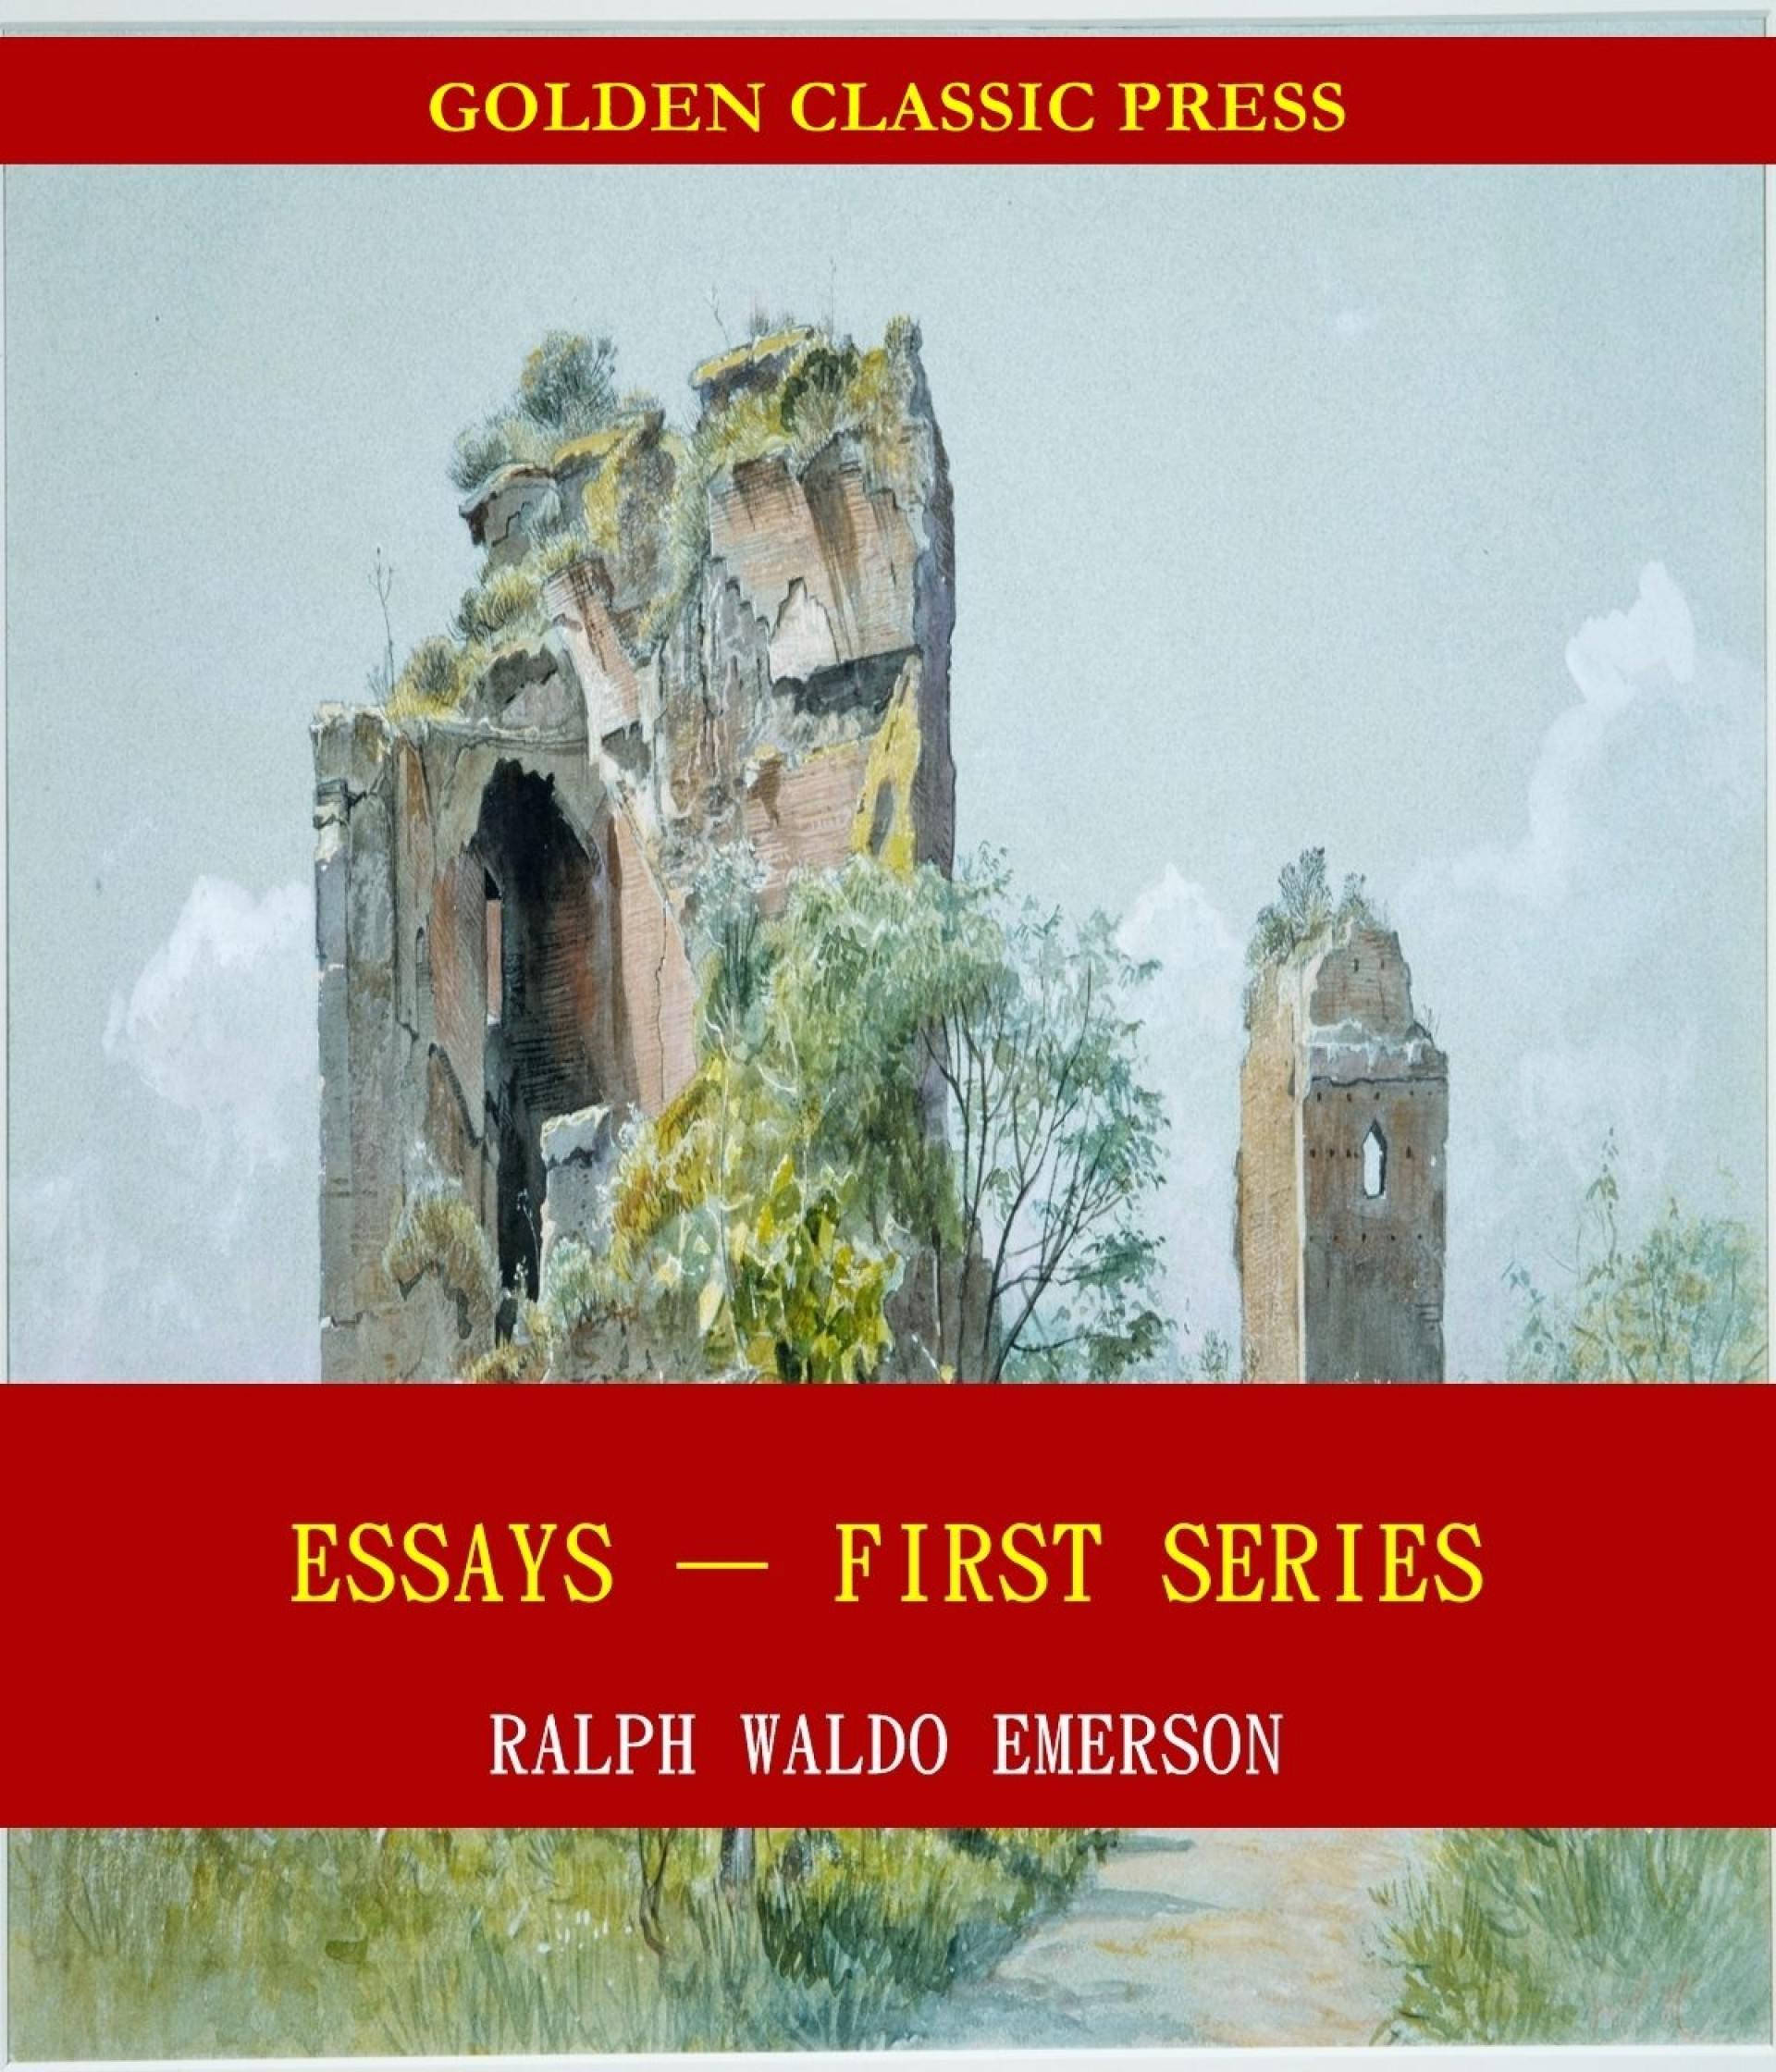 008 Essays First Series Essay Example Stunning Emerson Pdf Shelburne Publisher 1920